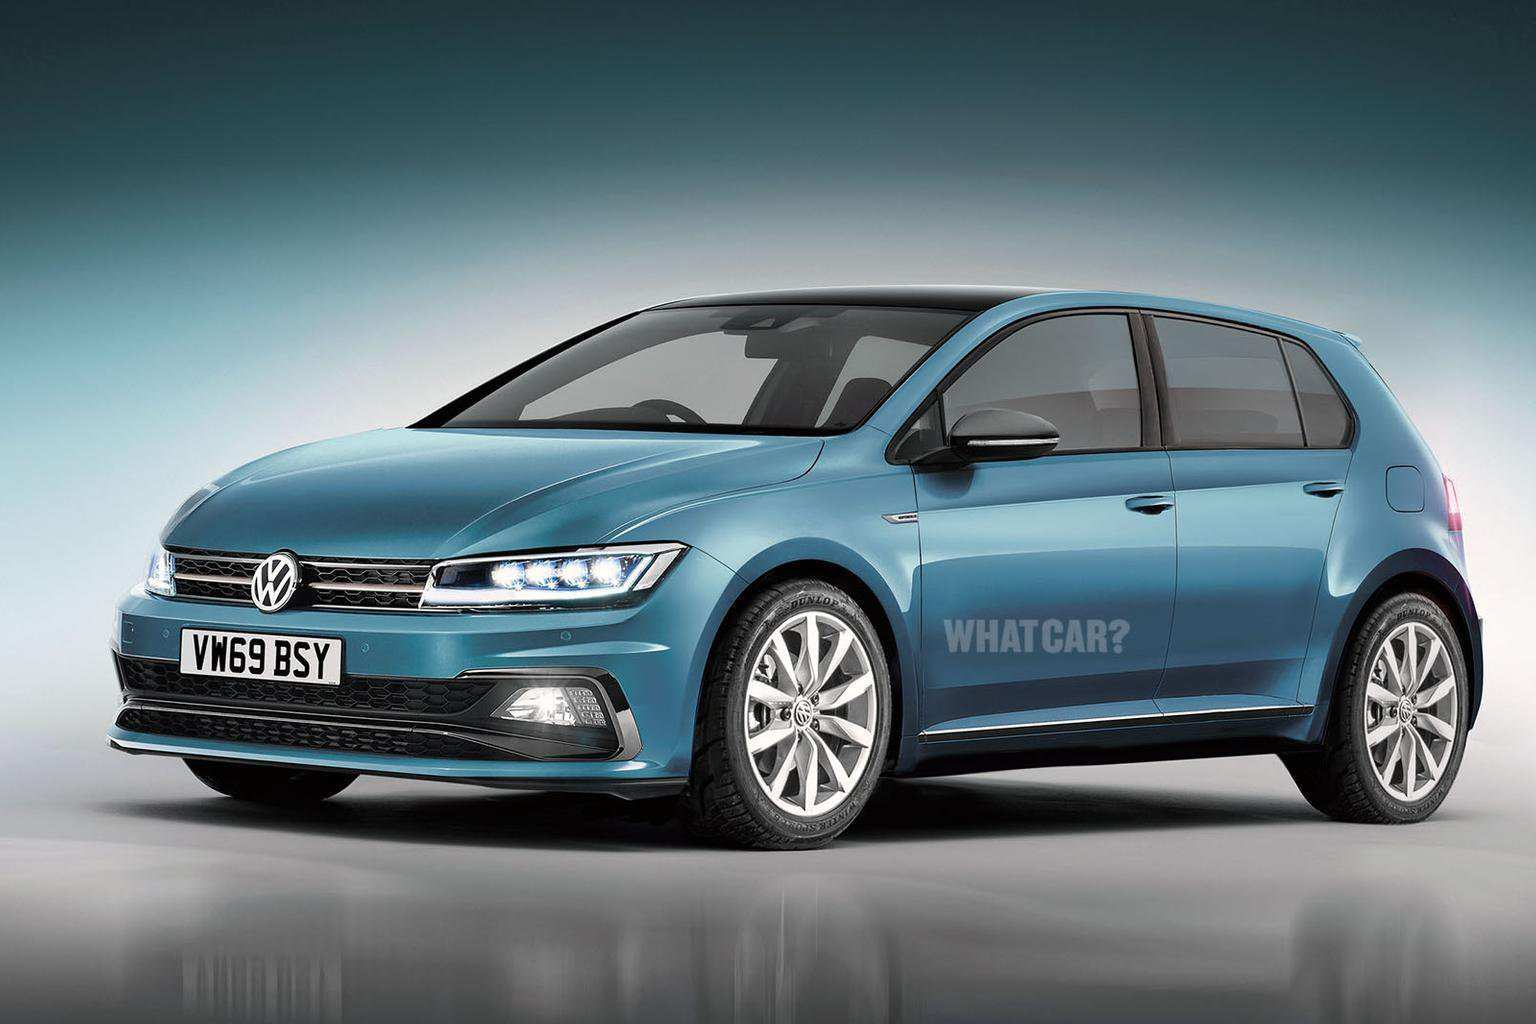 91 Gallery of Volkswagen Hybrid 2019 Performance And New Engine Speed Test for Volkswagen Hybrid 2019 Performance And New Engine